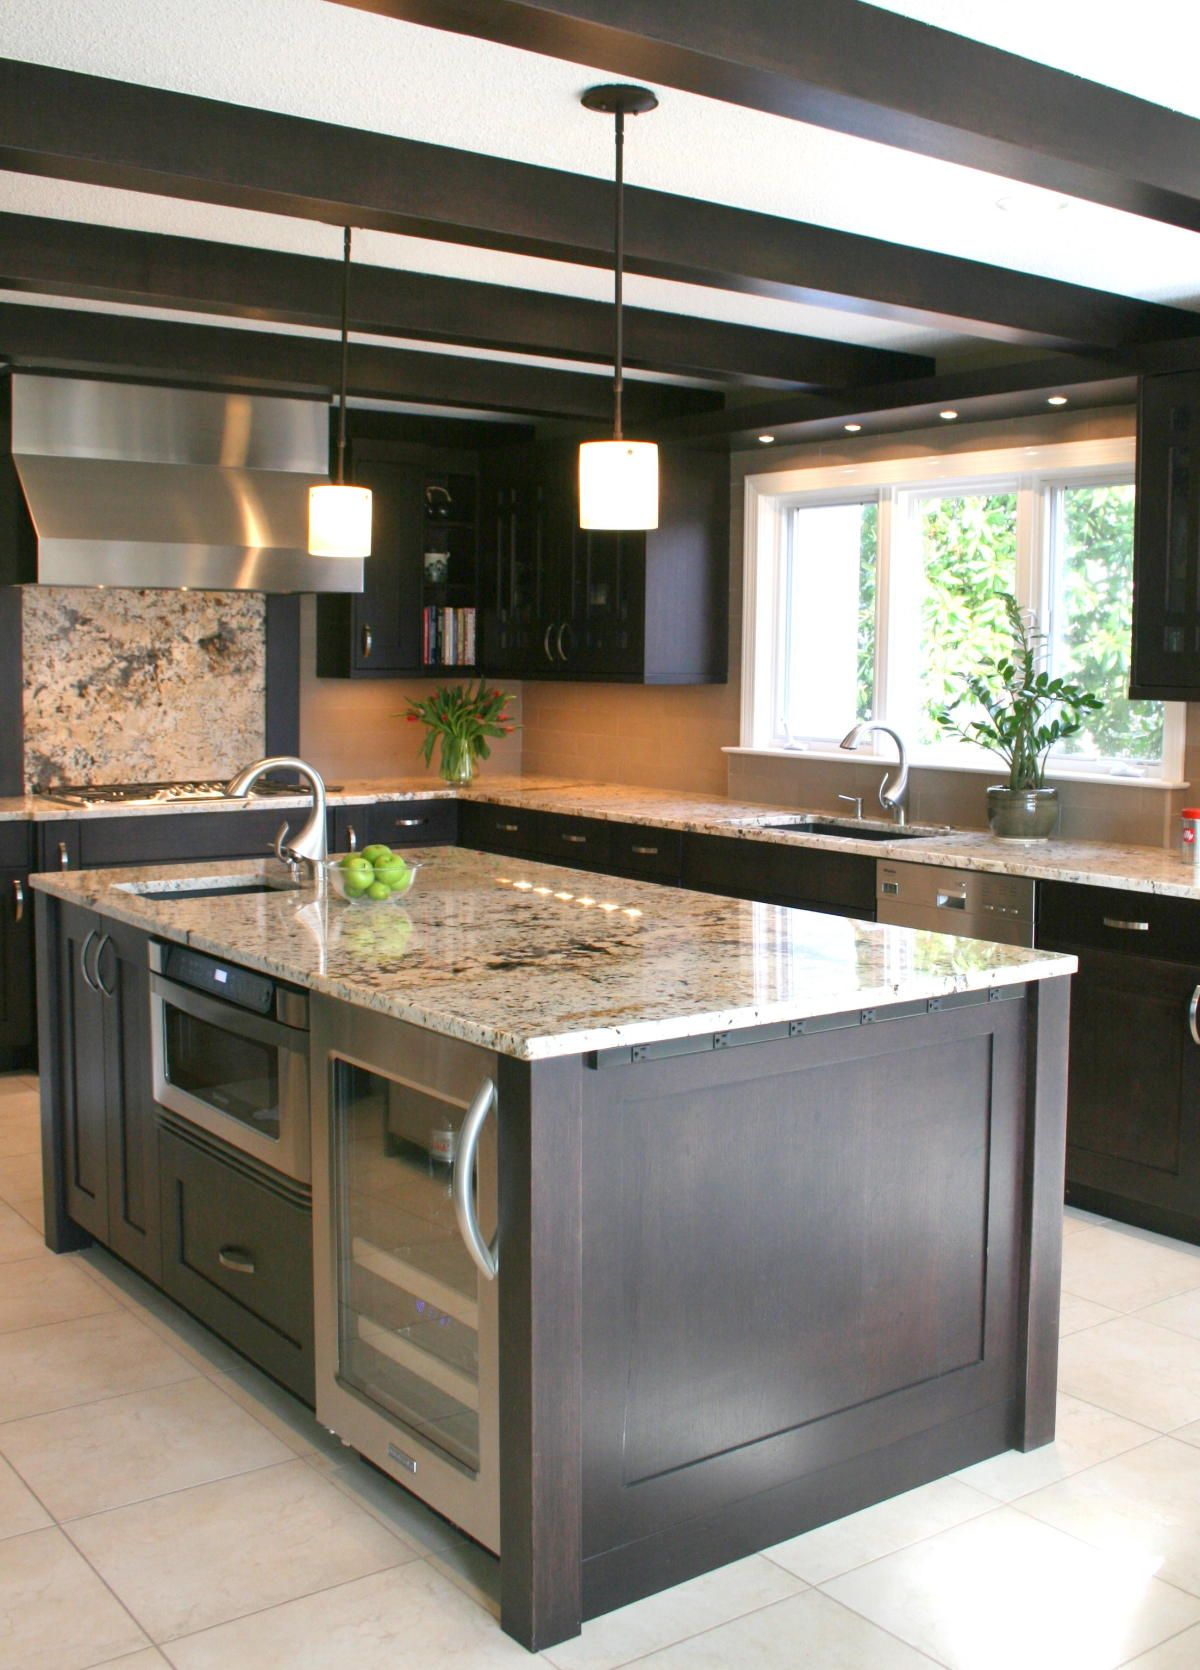 The working island appliances in the kitchen island for Kitchen appliance layout ideas